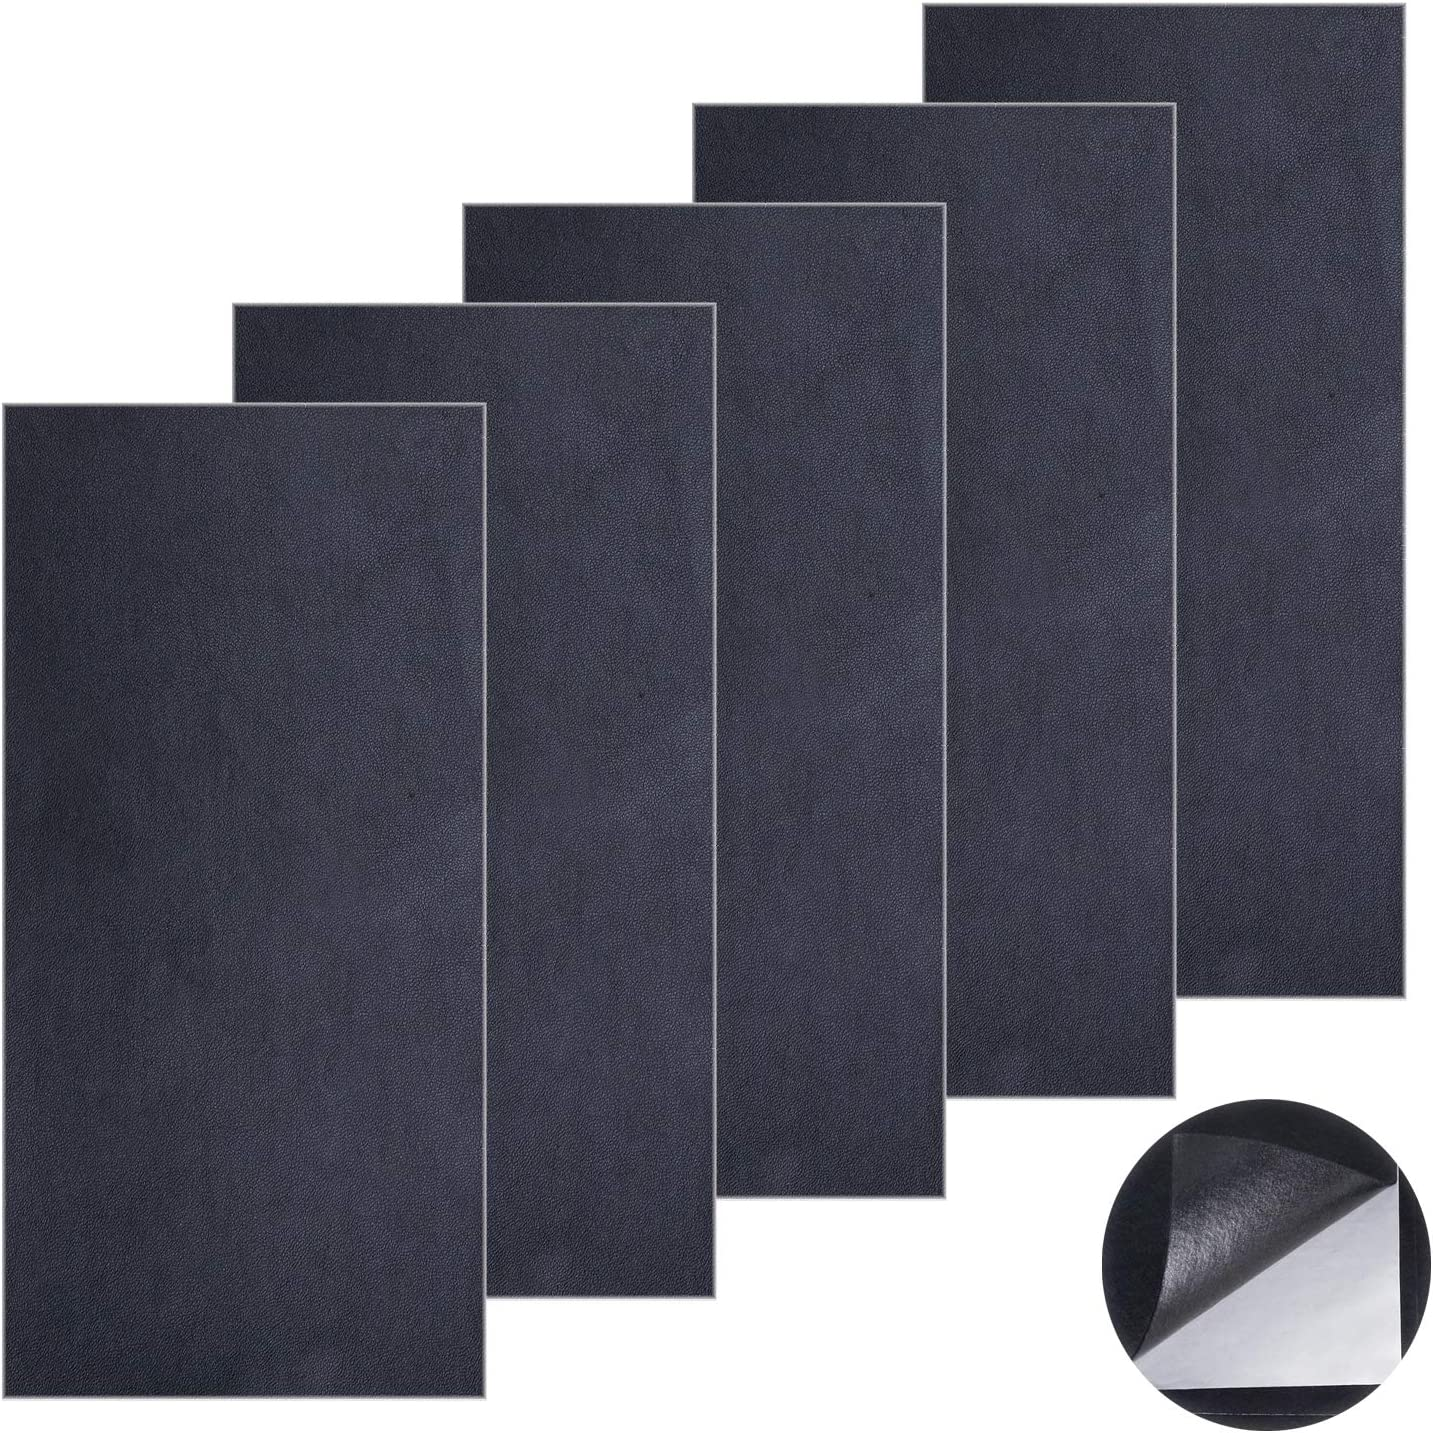 5 Pcs Leather Repair Patch Adhesive Leather Patch First aid for Sofas Car Seats Handbags Jackets Dark Brown 10/×20 cm